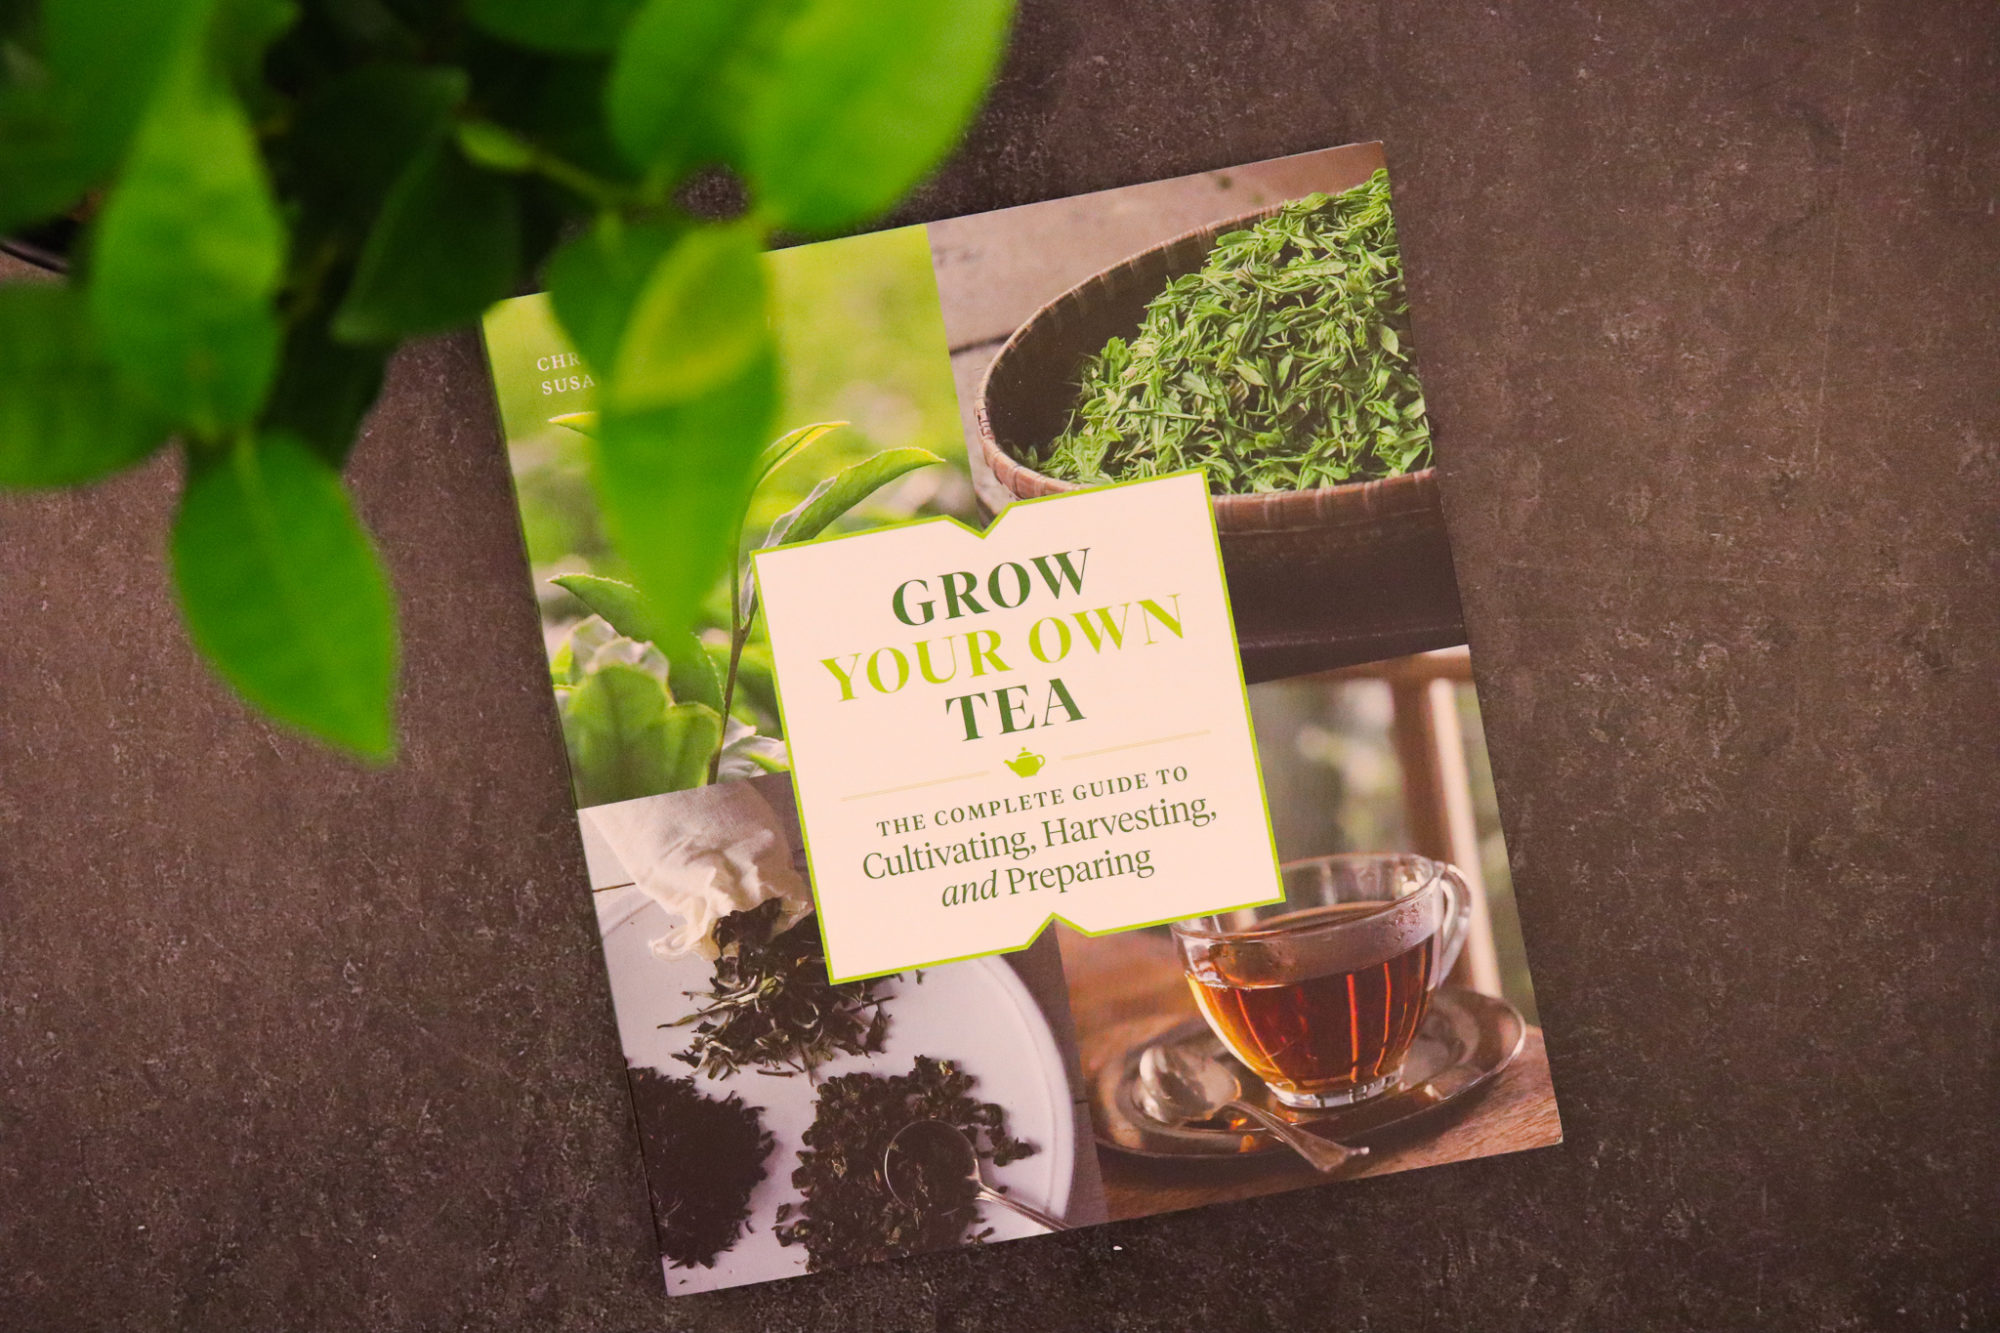 Grow Your Own Tea by Christine Parks and Susan M. Walcott